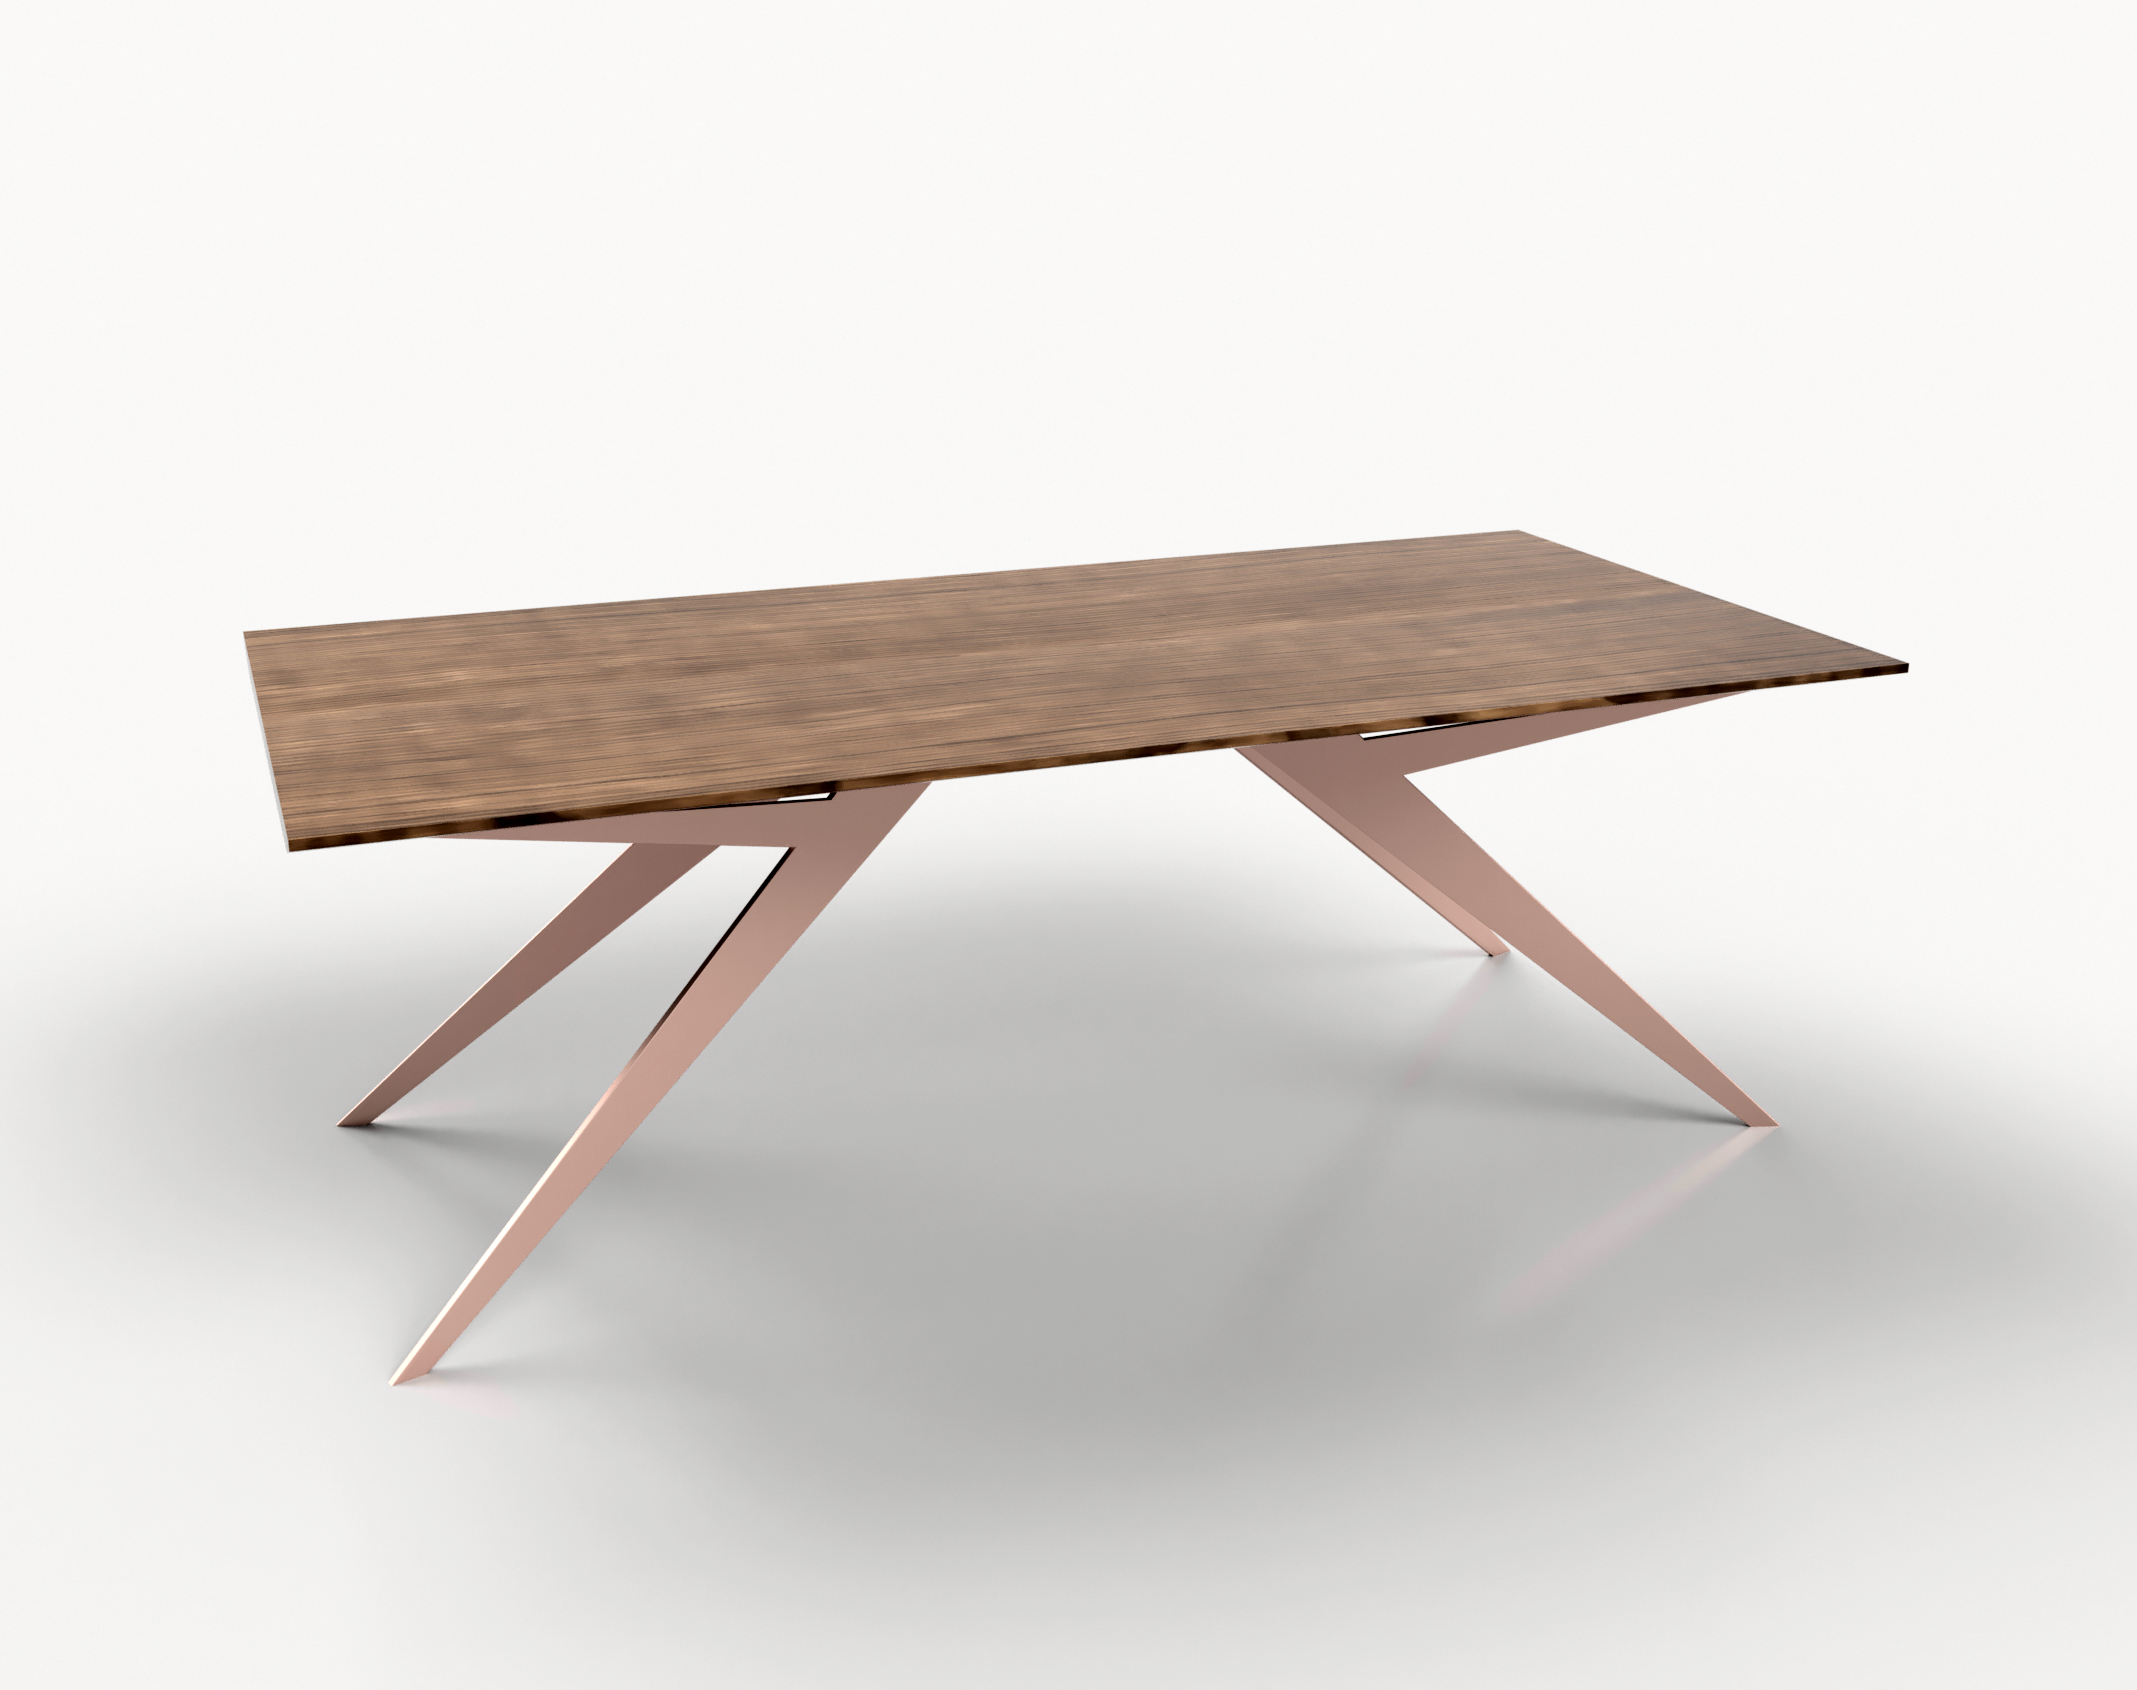 Vanni_Coffee_table_2017-Oct-28_10-36-31PM-000_CustomizedView5764855313_3-4top.png